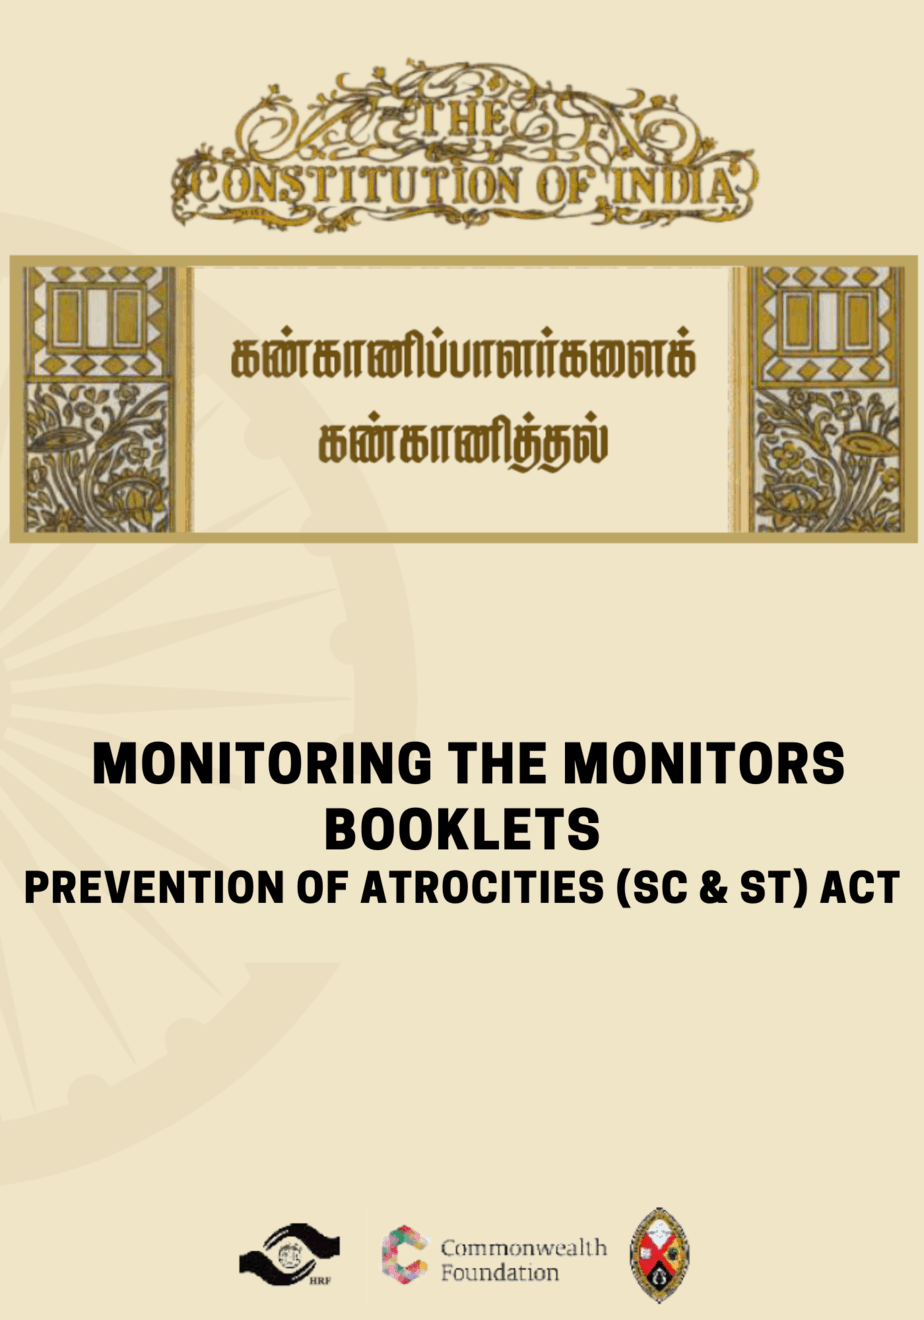 Monitoring the monitors – Prevention of Atrocities